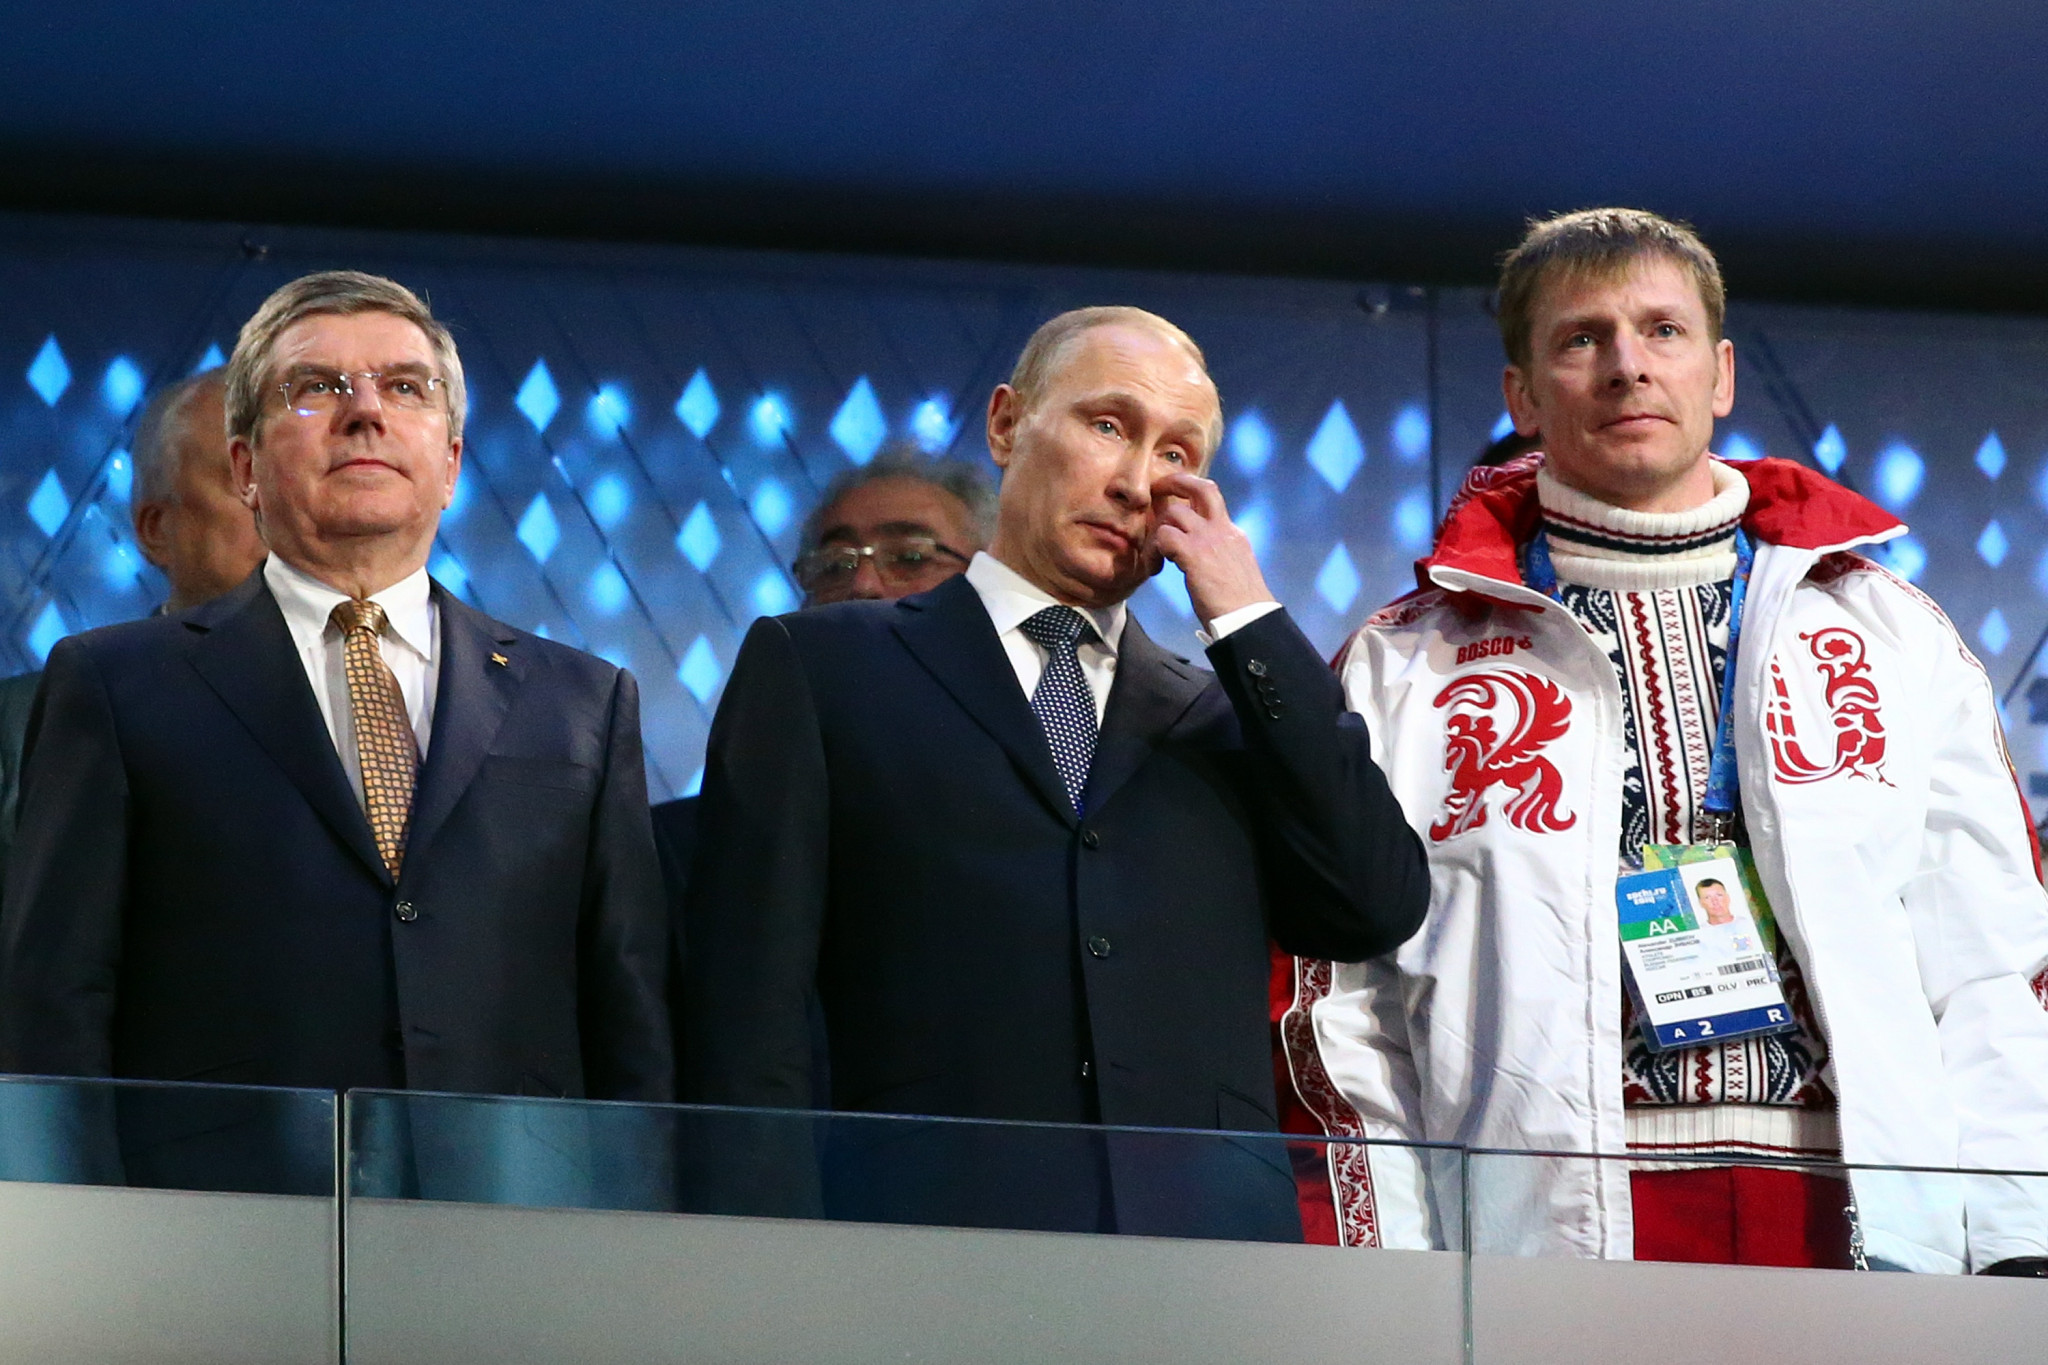 Zubkov claims will not appeal CAS decision to uphold Sochi 2014 disqualification